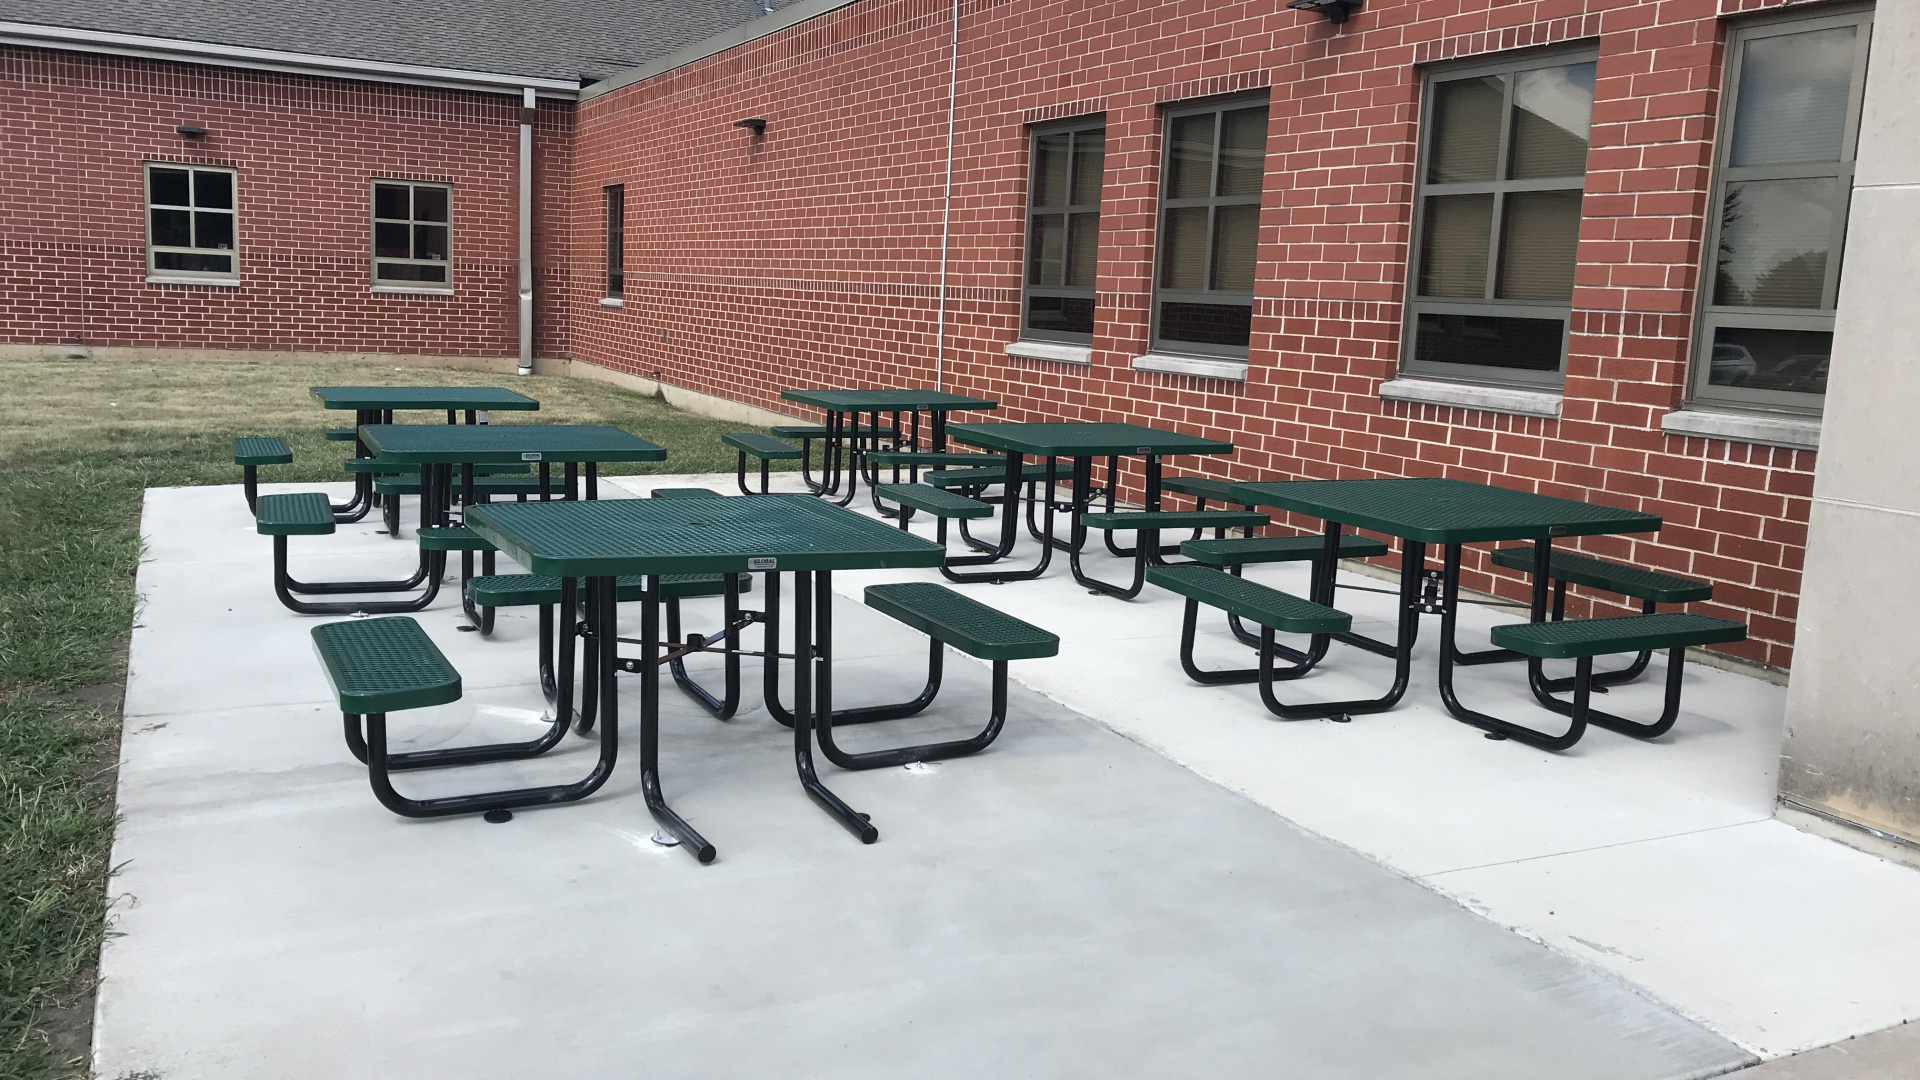 slidshow image - Thank You to our PTO for our School Gift - We finished the Seating for our Outdoor Classroom! -